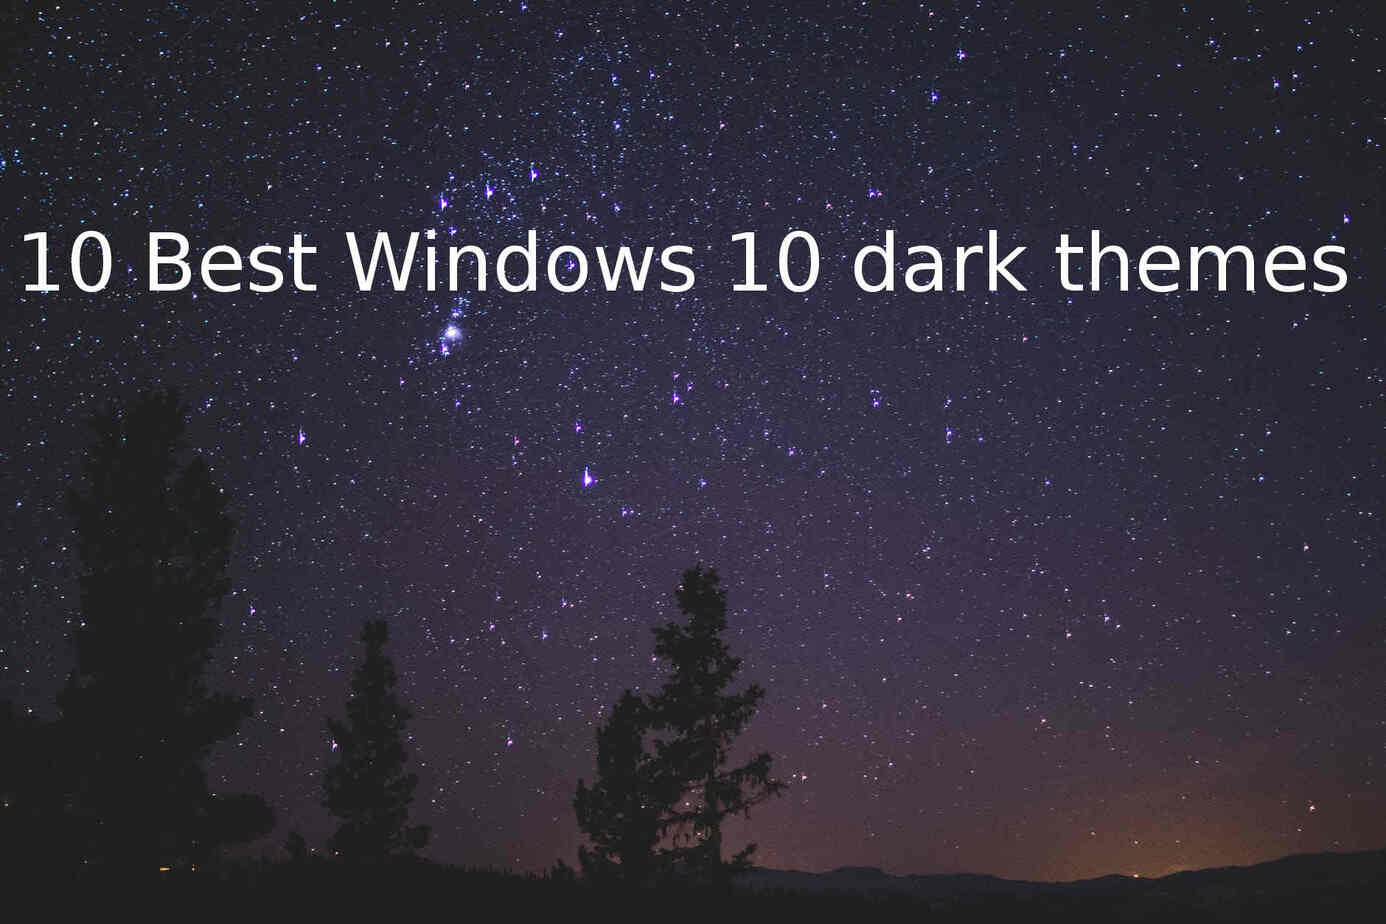 10 Best Windows 10 Dark Themes(2018 Best Edition Dark Themes)